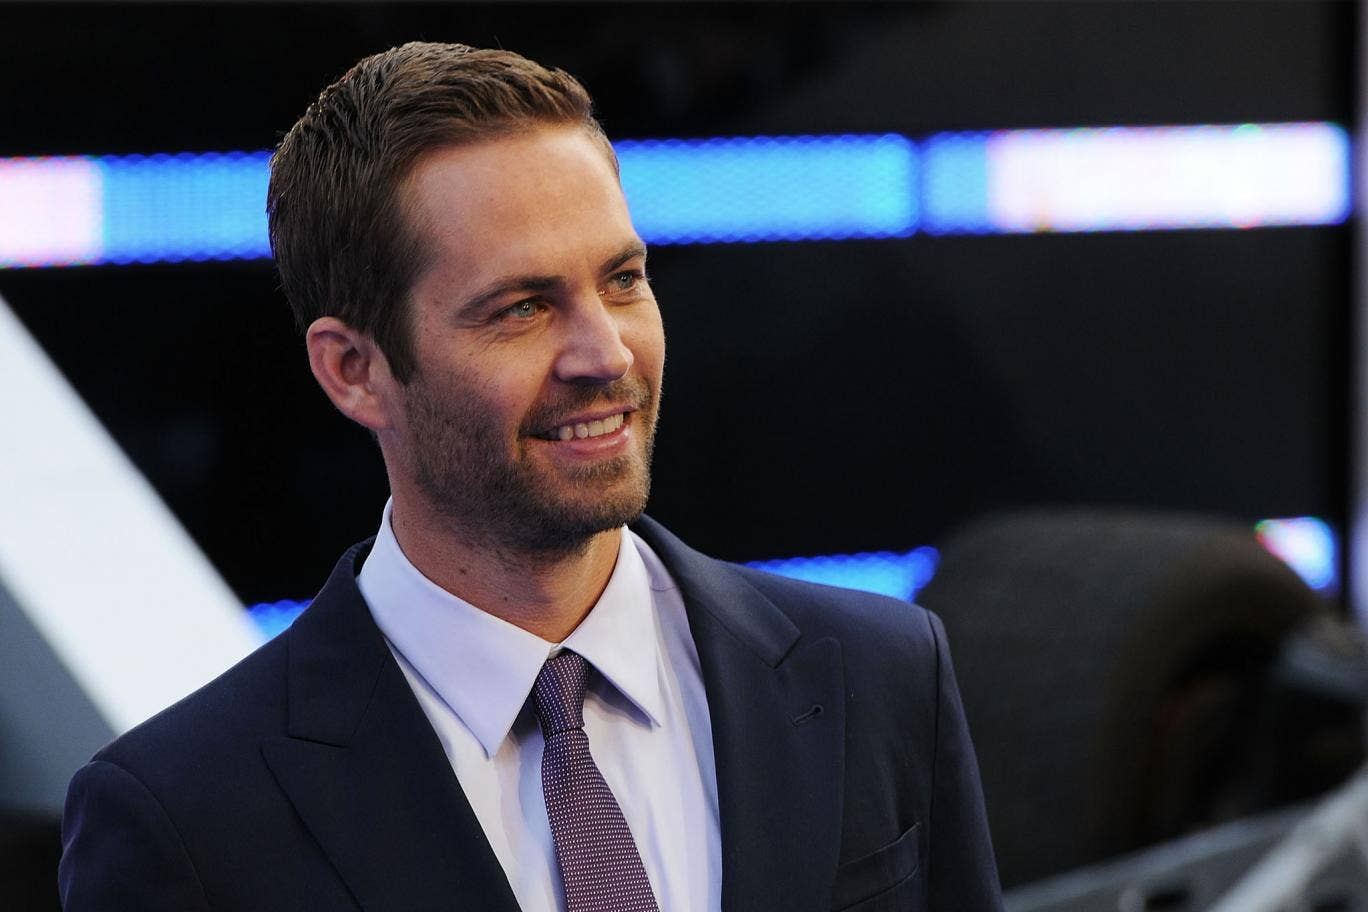 Paul Walker tops list of the most searched for People of 2013